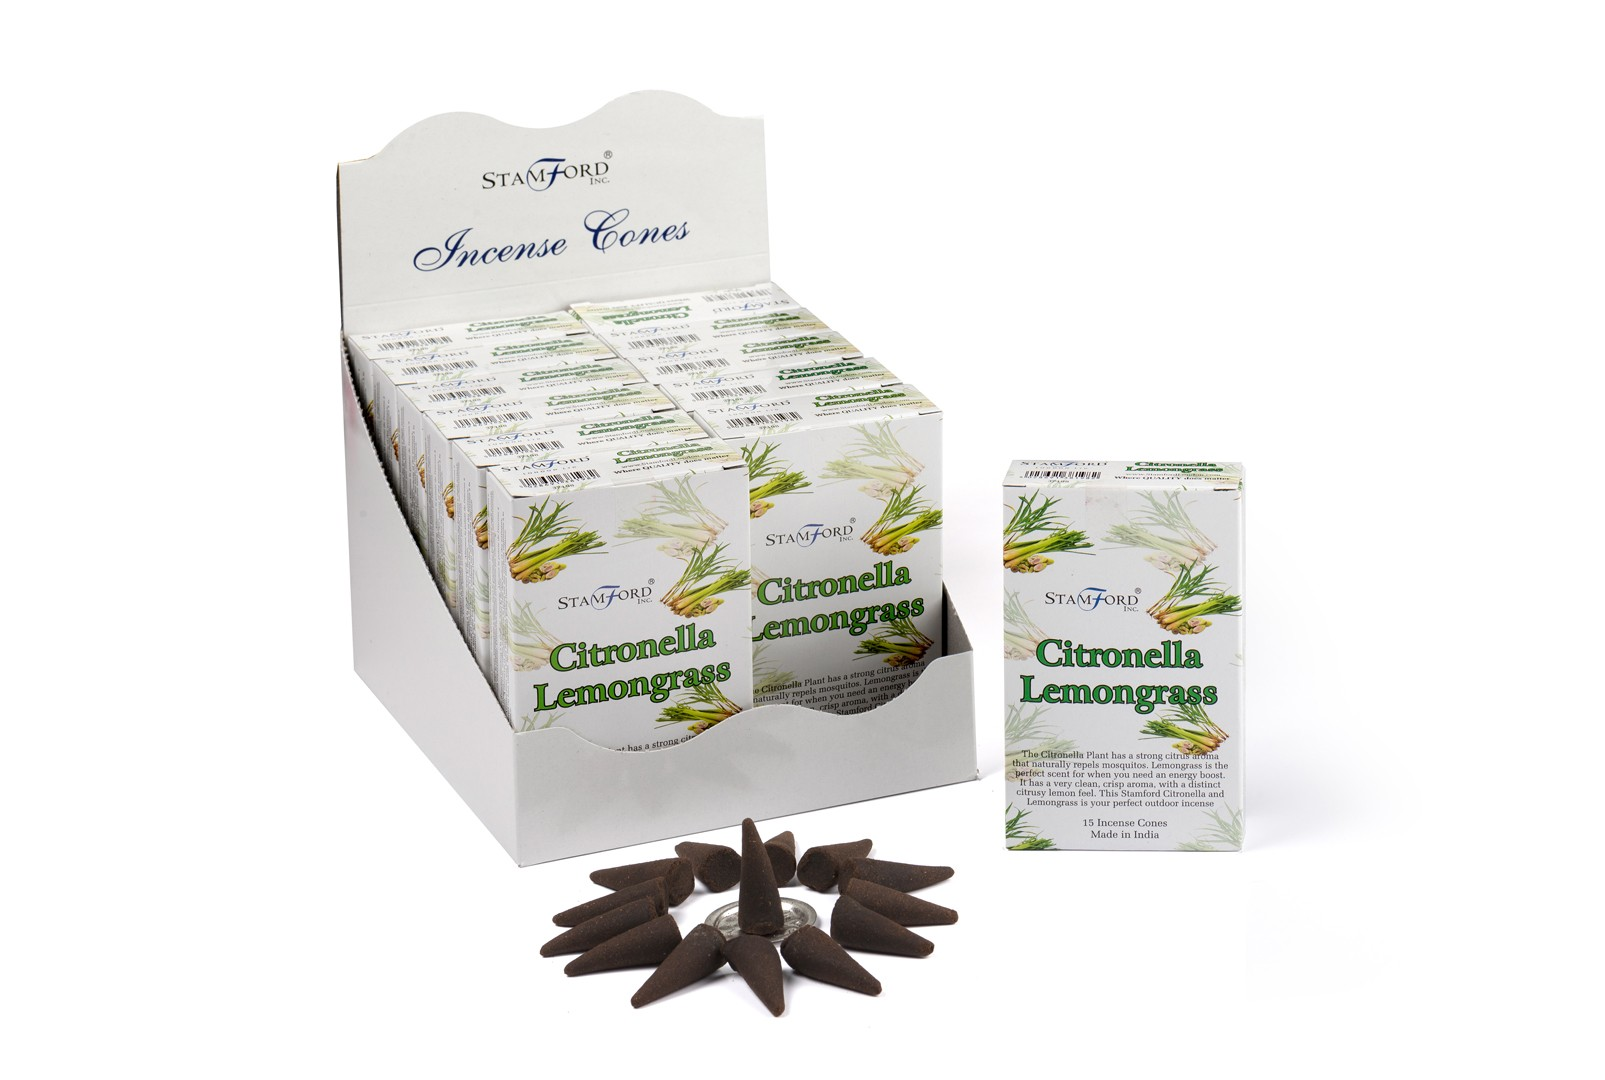 Citronella   Lemongrass Incense Cones